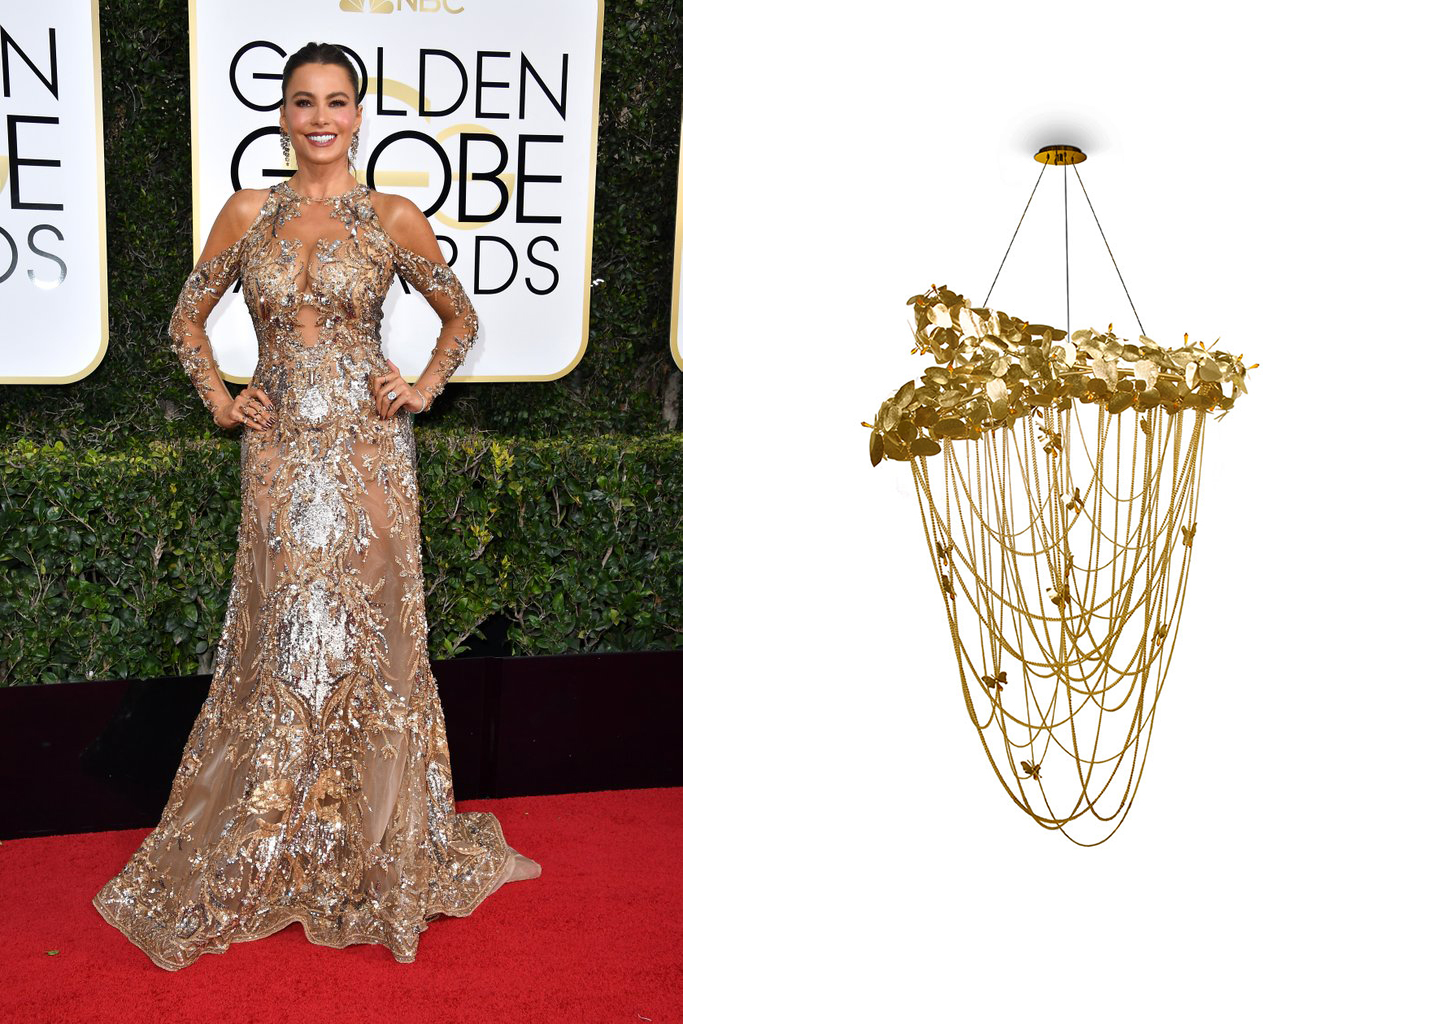 5 Home Decor Items Inspired by the 2017 Golden Globes Red Carpet 2017 golden globes red carpet 5 Home Decor Items Inspired by the 2017 Golden Globes Red Carpet 5 Home Decor Items Inspired by The Golden Globes Red Carpet 5